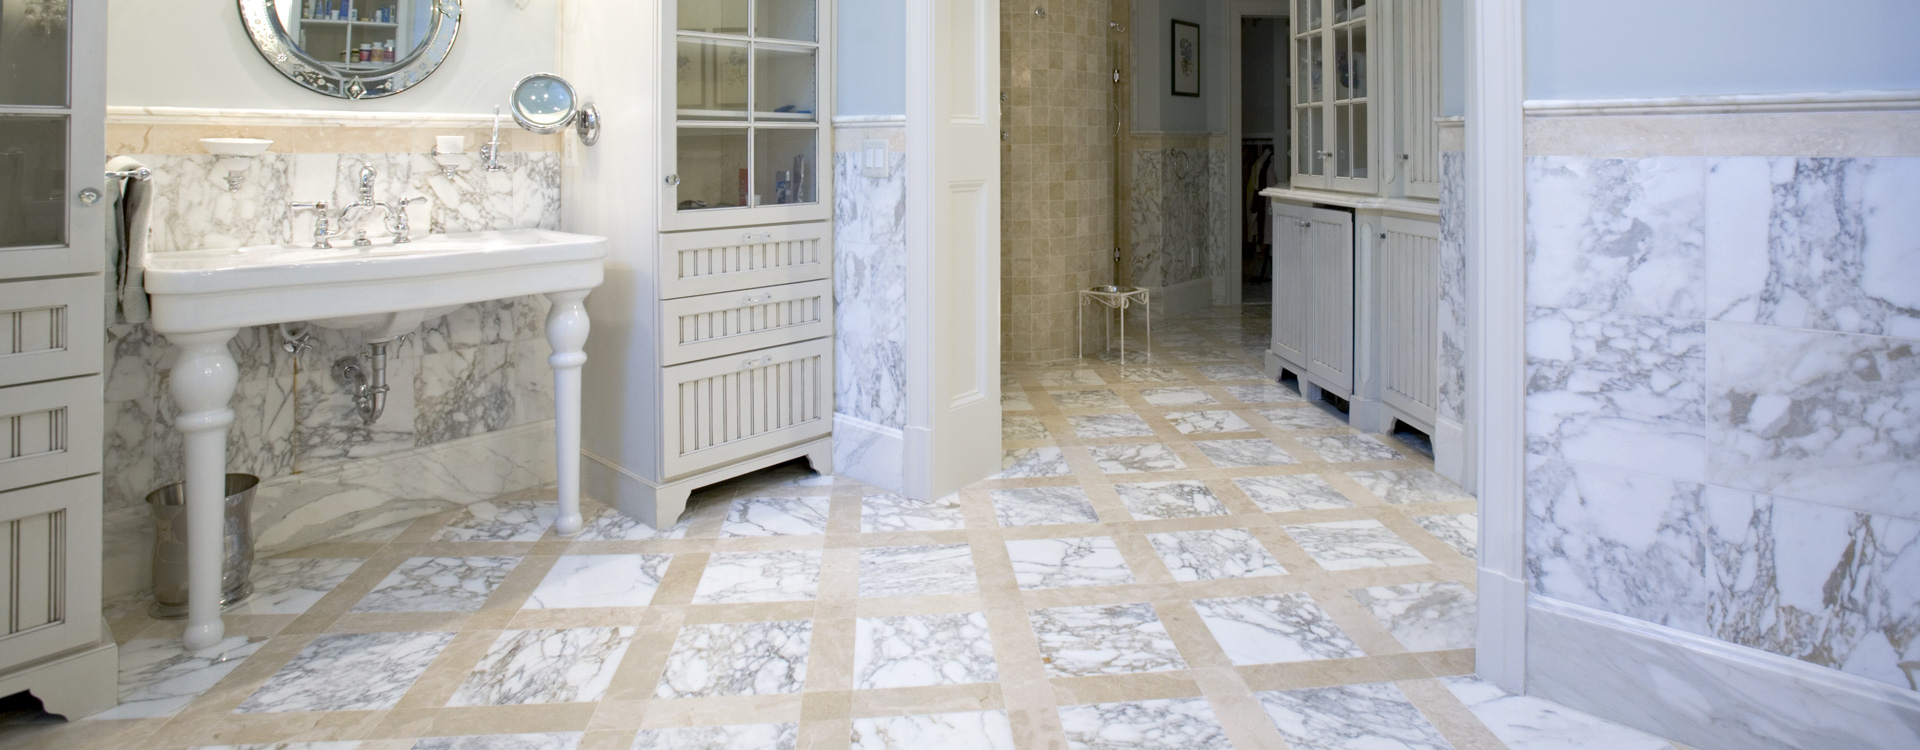 Bathroom Marble Design